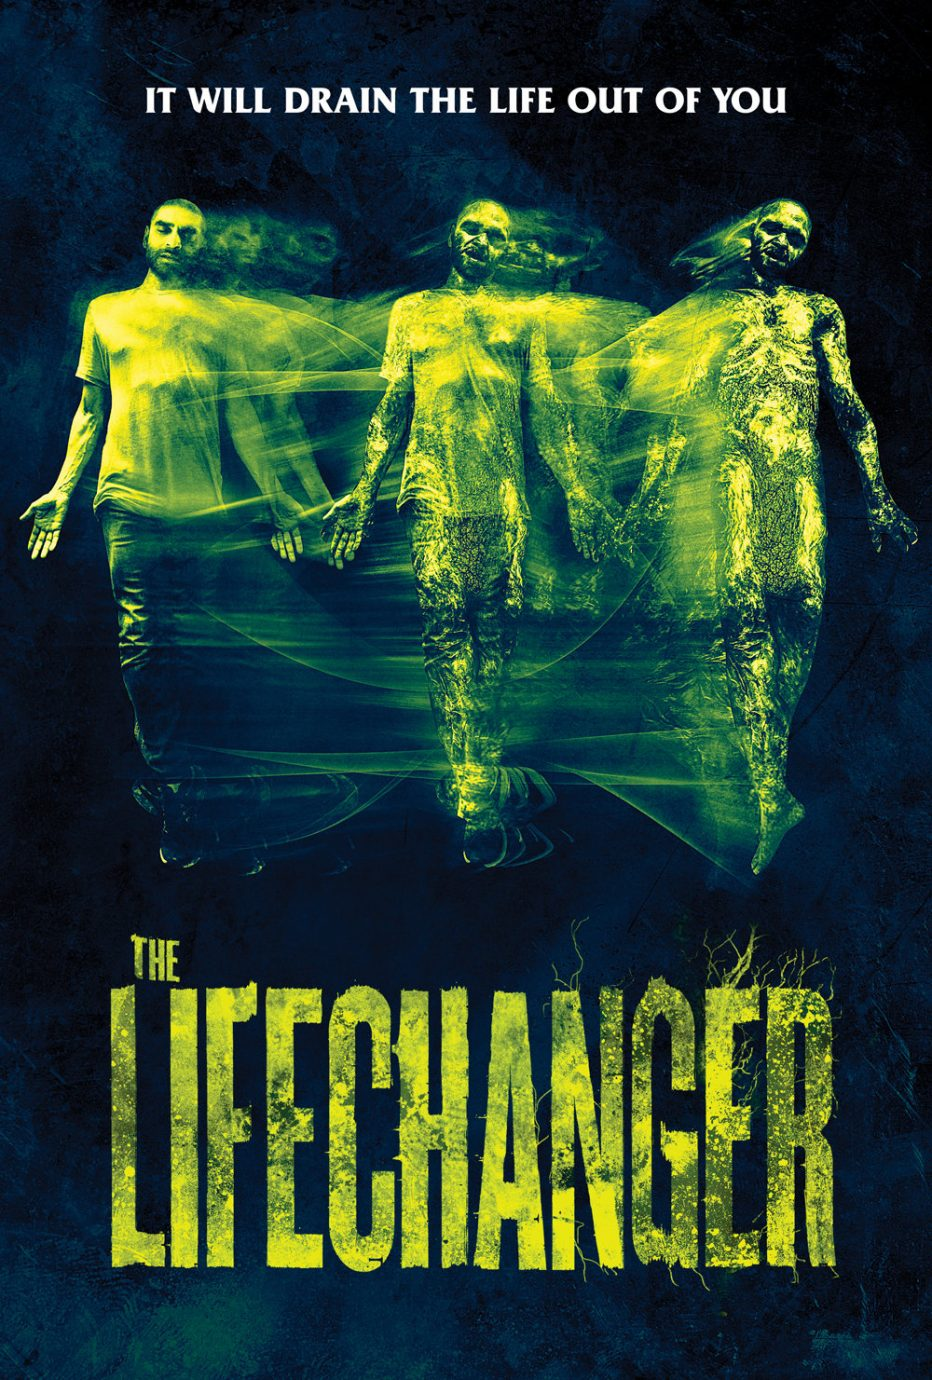 New Trailer and Poster for LIFECHANGER – coming January 1, 2019!